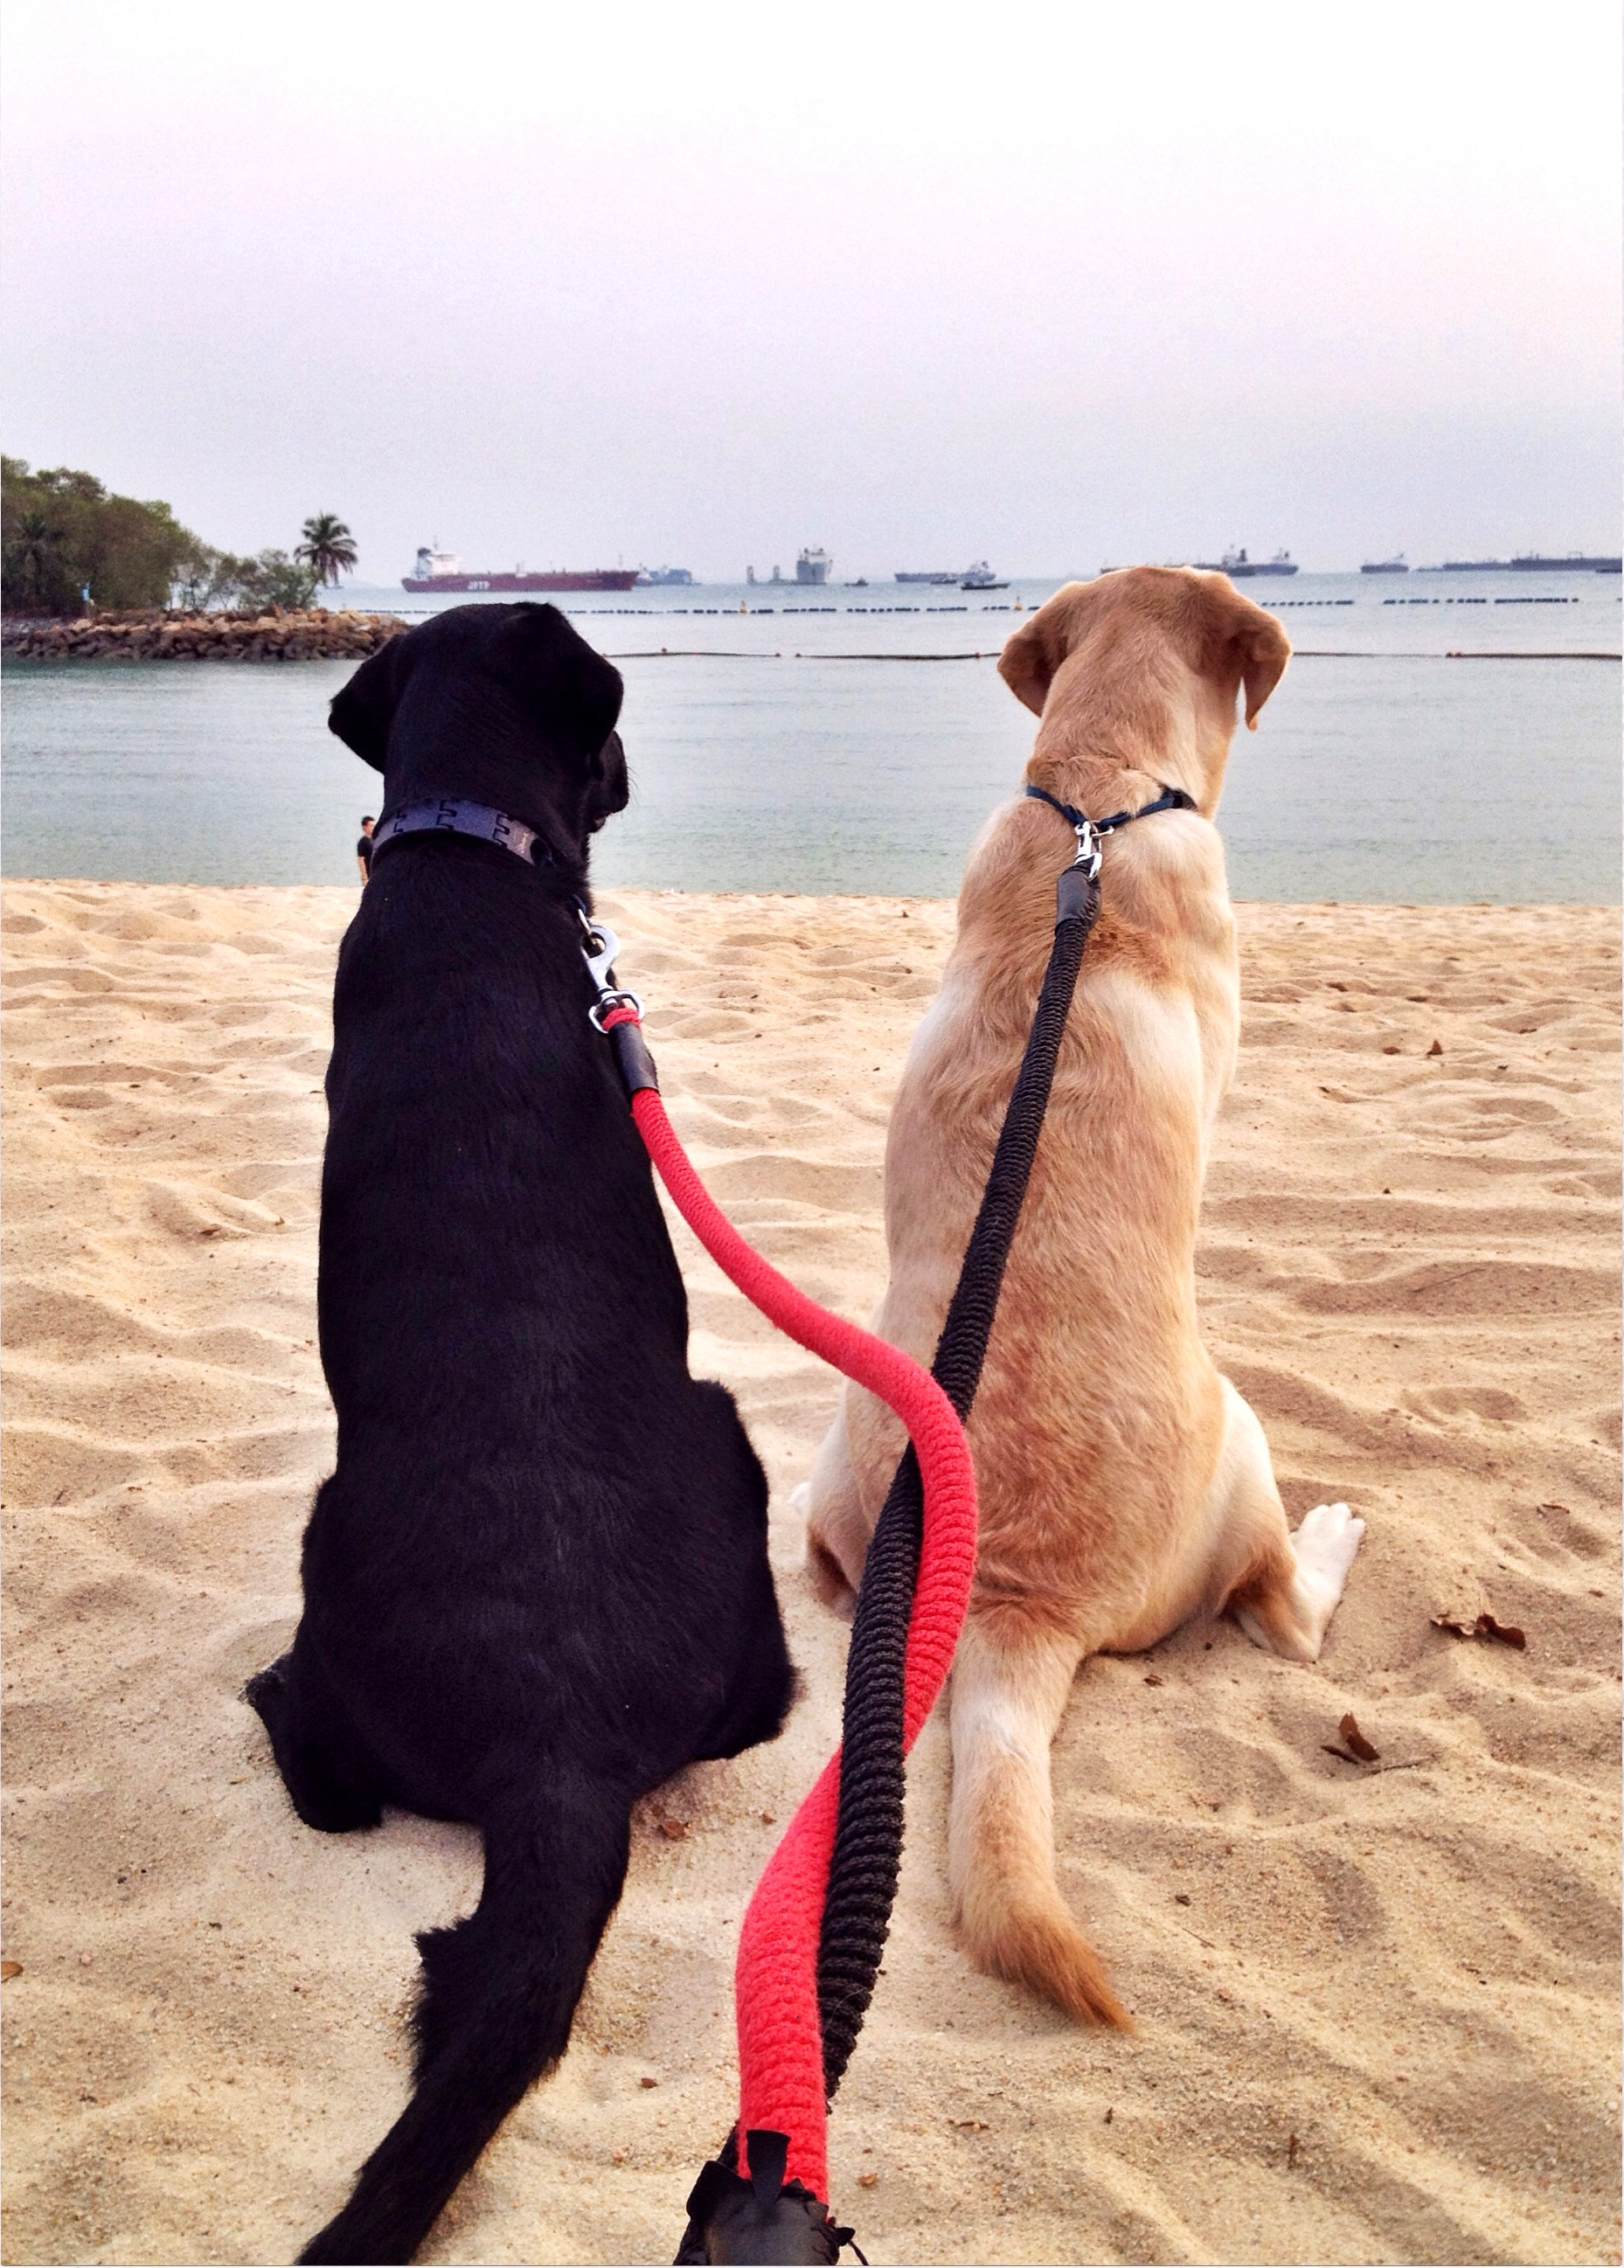 Dog Travel Story: Luke and Leia's Relocation to Singapore